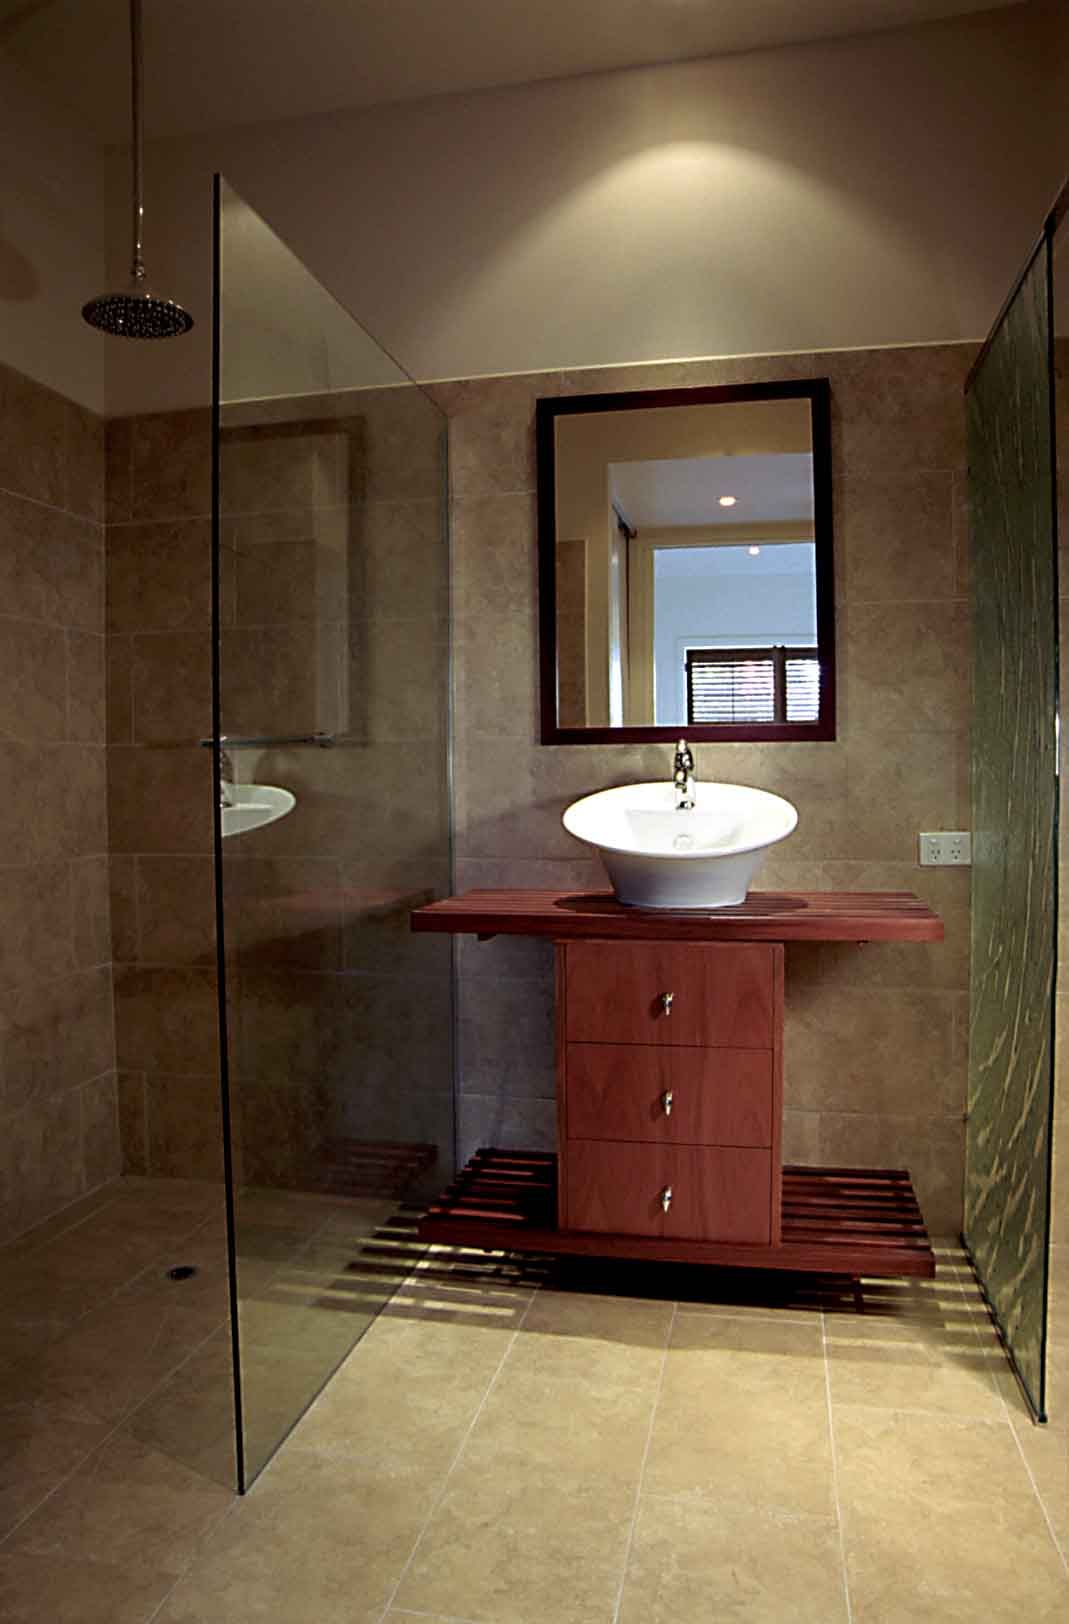 Wet room design for small bathrooms small ensuite for Tiny ensuite designs